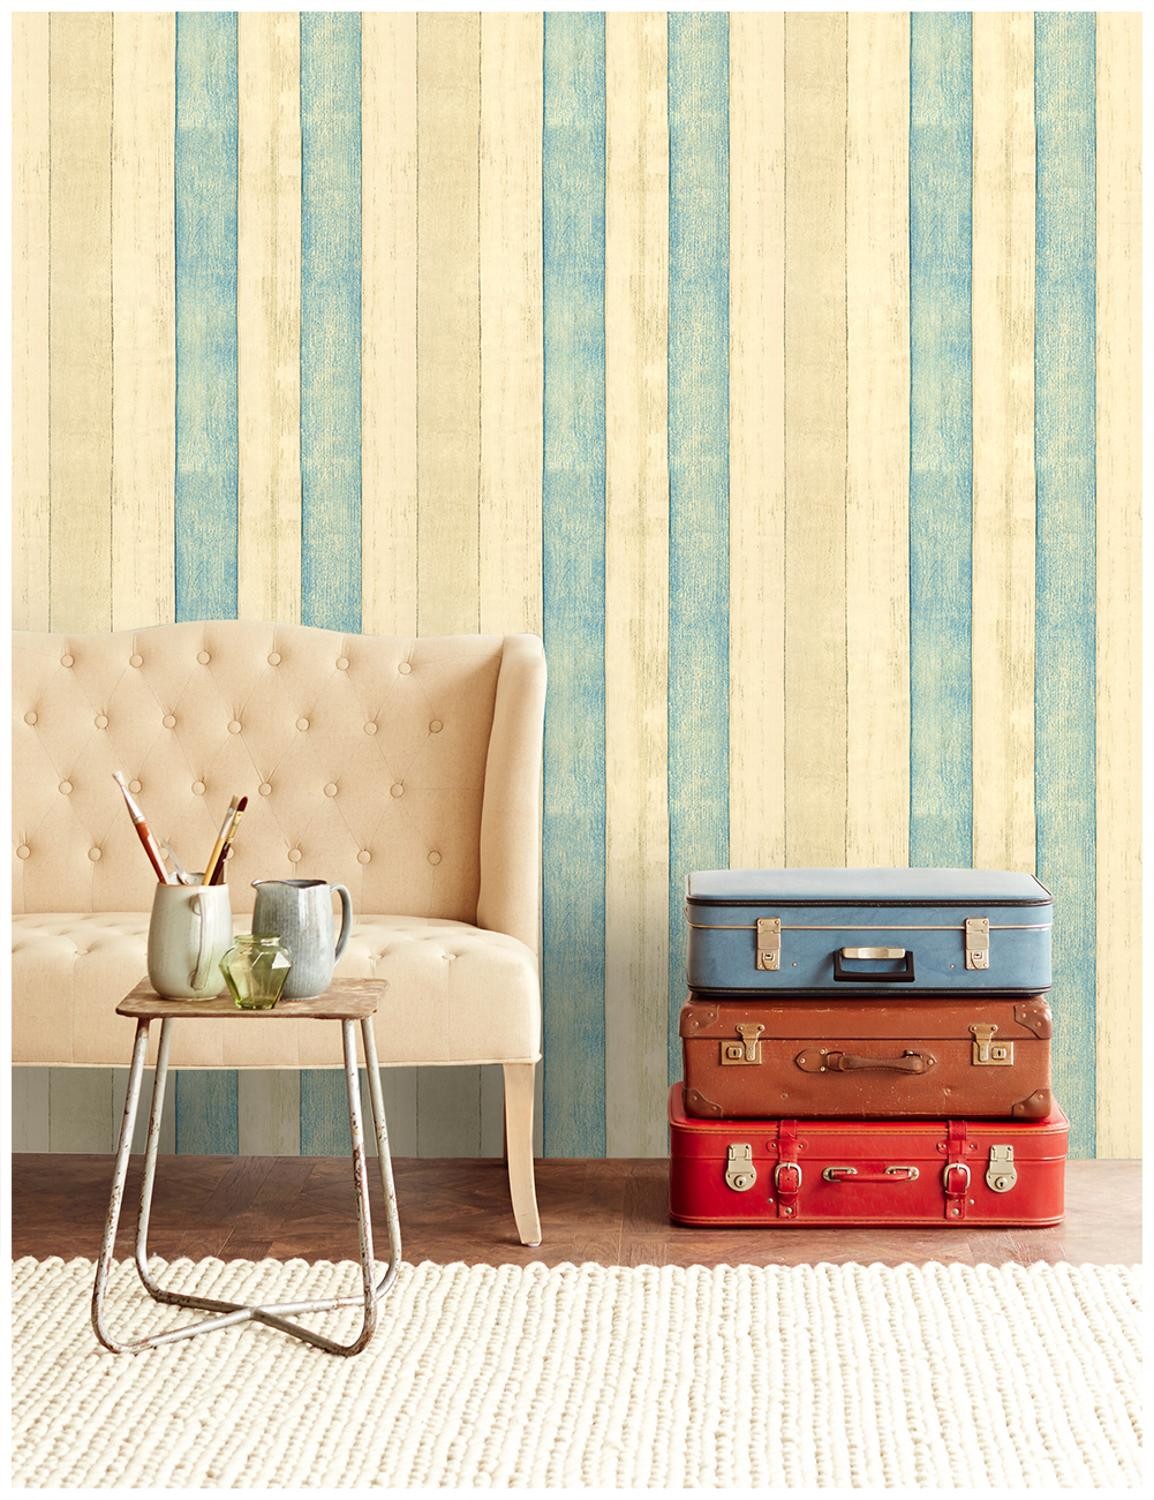 HaokHome Wood Plank Wallpaper self adhesive 0.45m*3m Vinyl Rolls Yellow/Blue For Living room Bathroom Kitchen home decorationHaokHome Wood Plank Wallpaper self adhesive 0.45m*3m Vinyl Rolls Yellow/Blue For Living room Bathroom Kitchen home decoration